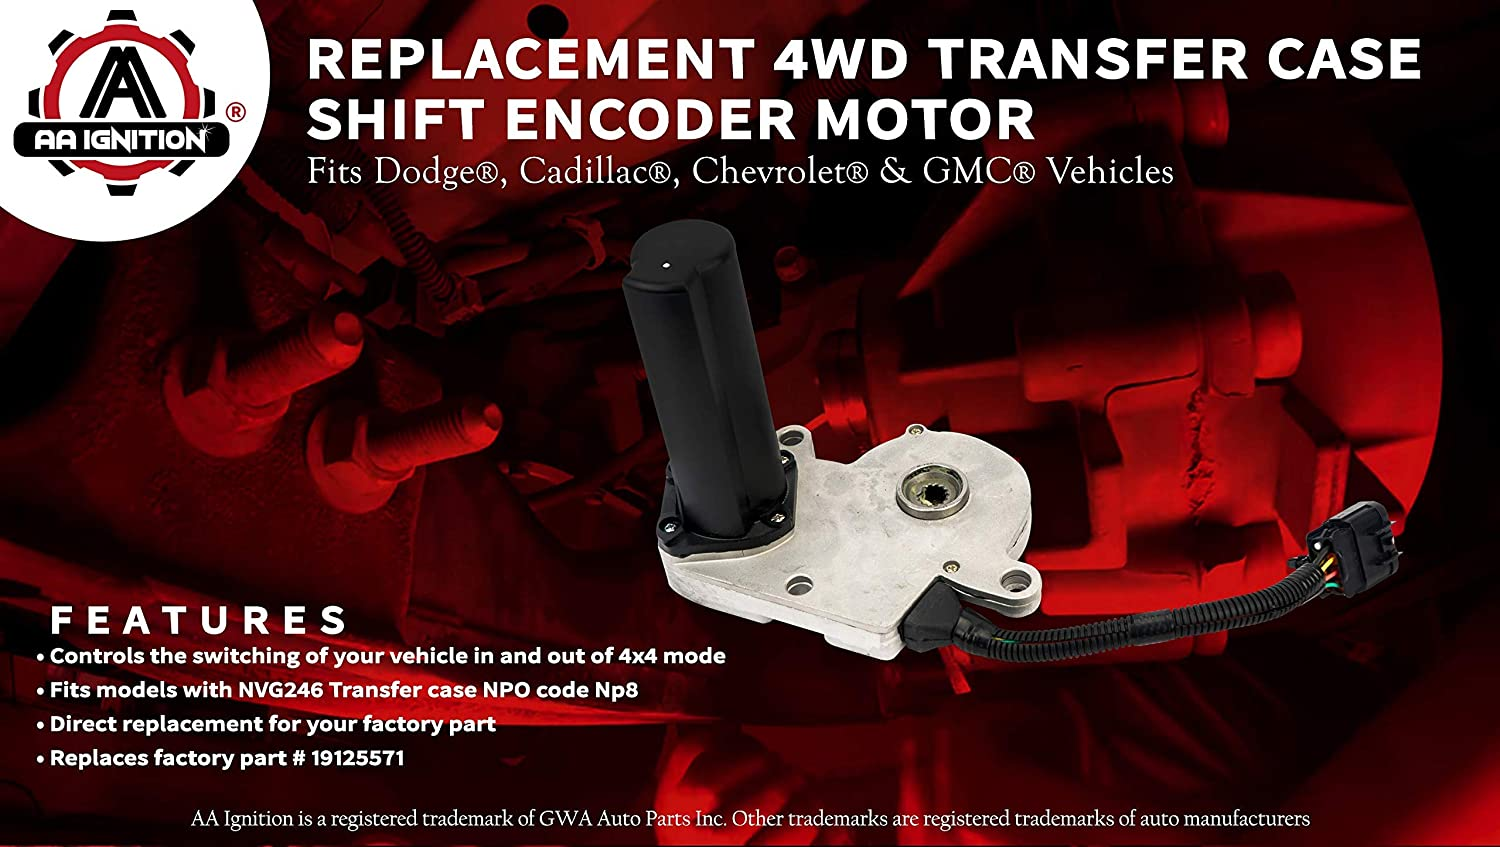 Renewed 4WD Transfer Case Shift Encoder Motor -Fits Chevy Silverado Avalanche 2003-2010 -Replaces# 19125571 600-910 Suburban 600910 88962314 GMC Sierra Yukon XL Tahoe 2500 Dodge Ram 1500